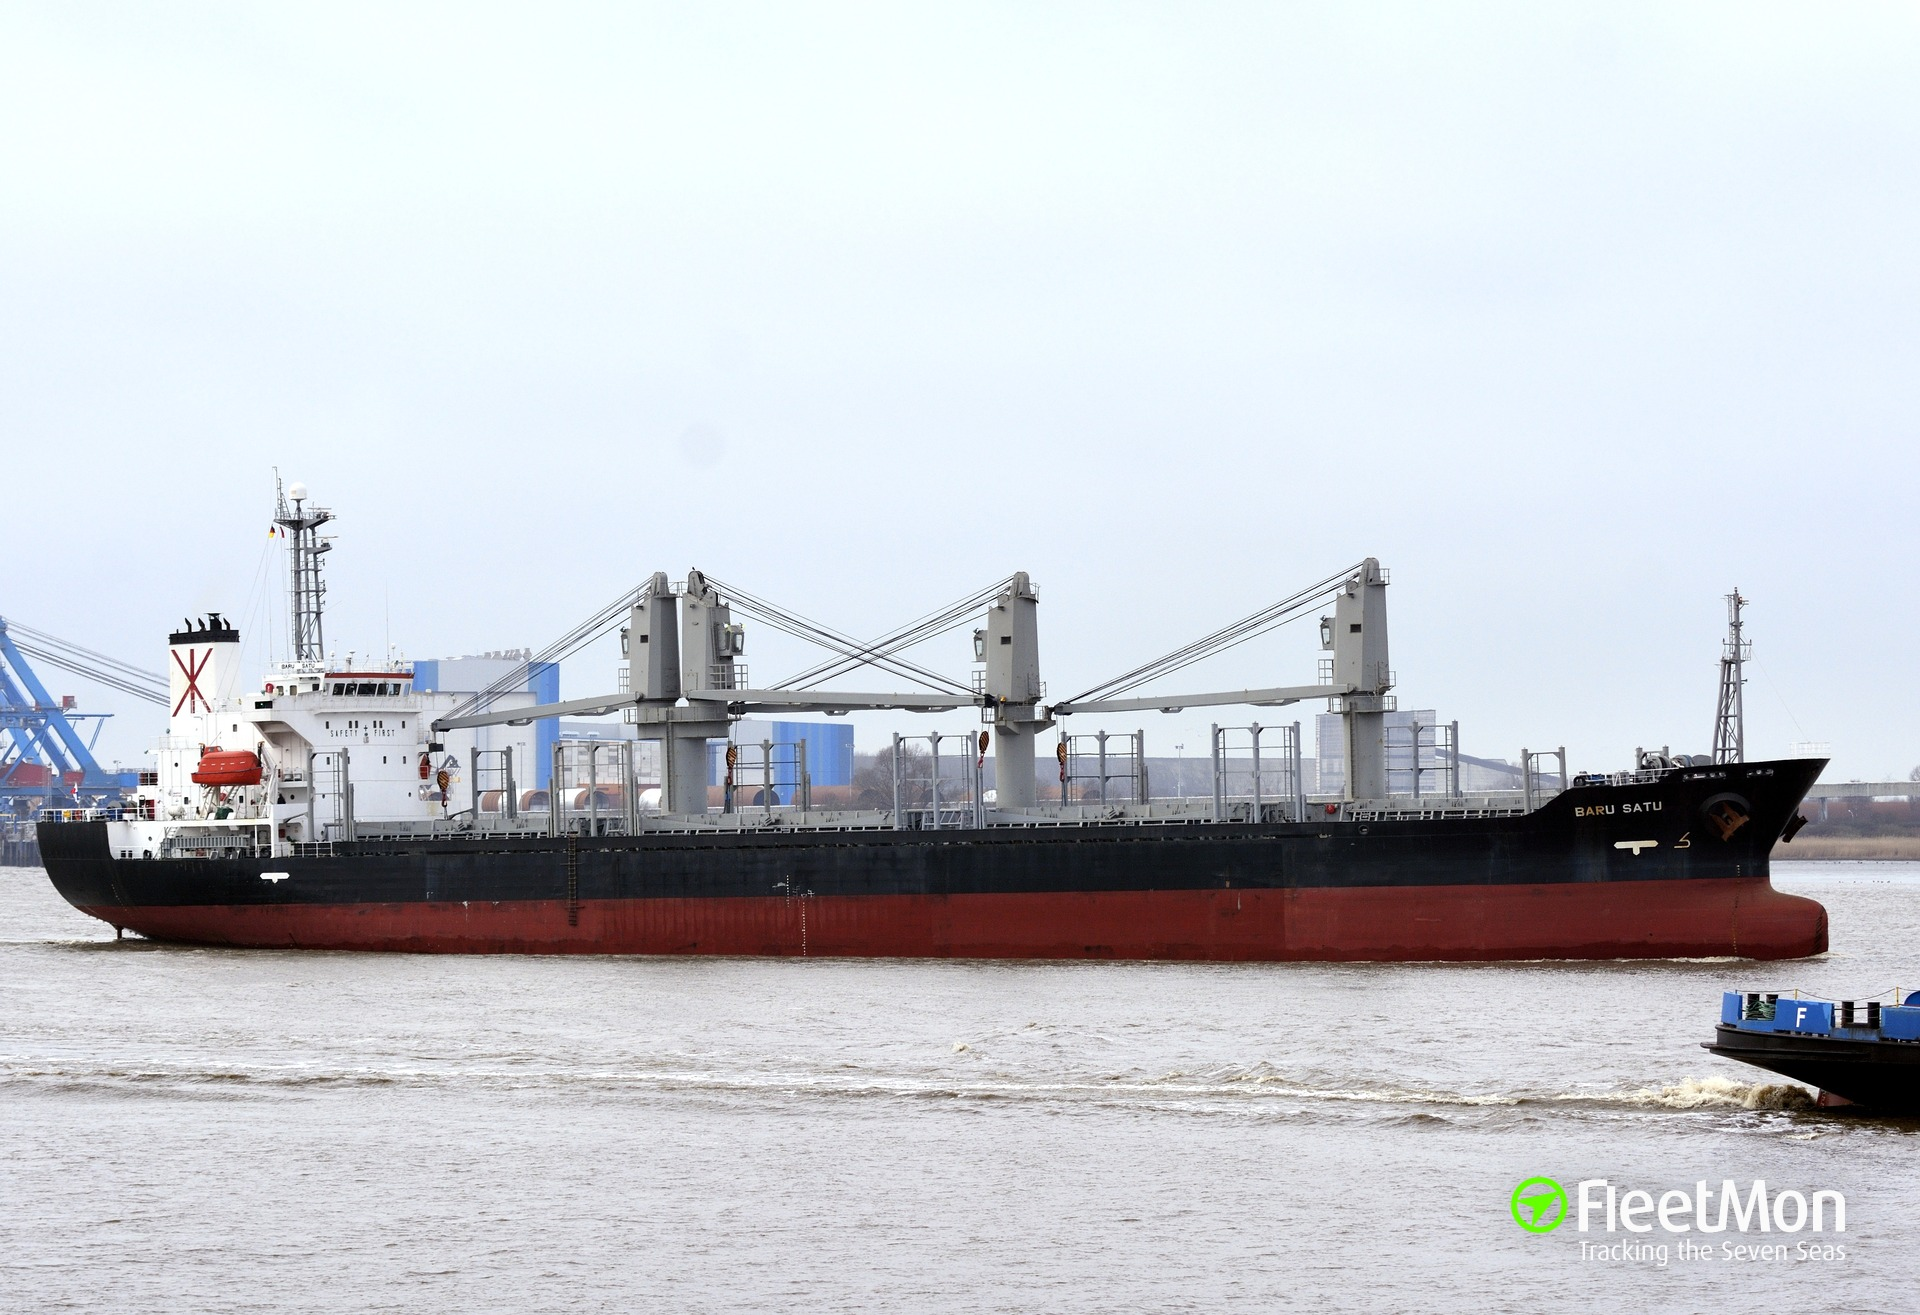 Bulk carriers Katherine and Baru Satu are under tow